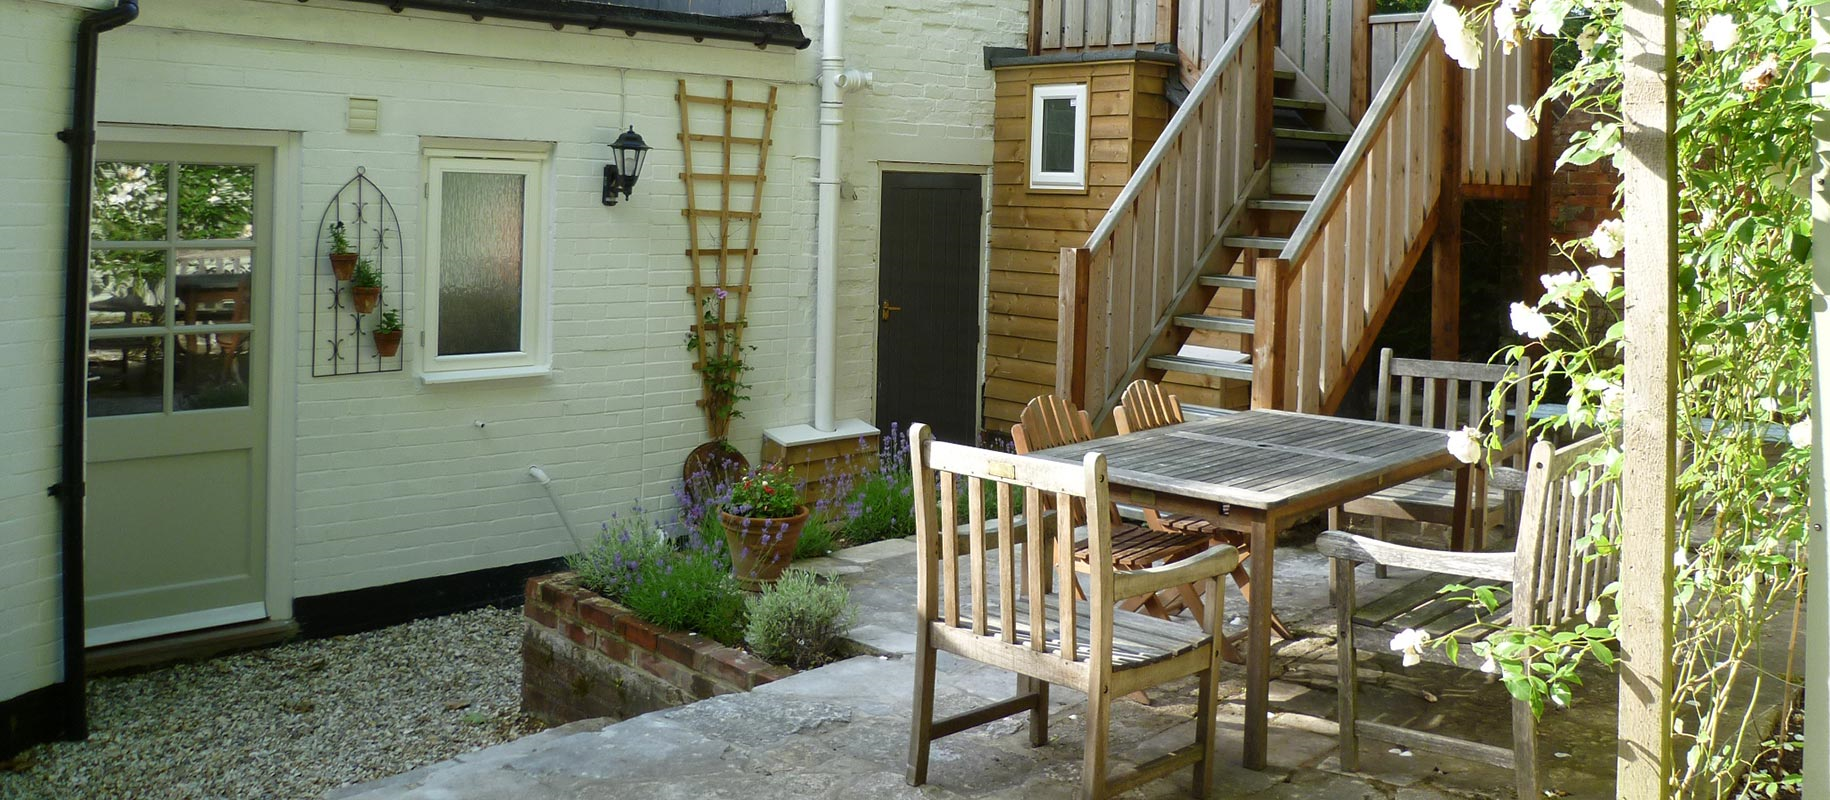 Holiday Rental in Milford on Sea